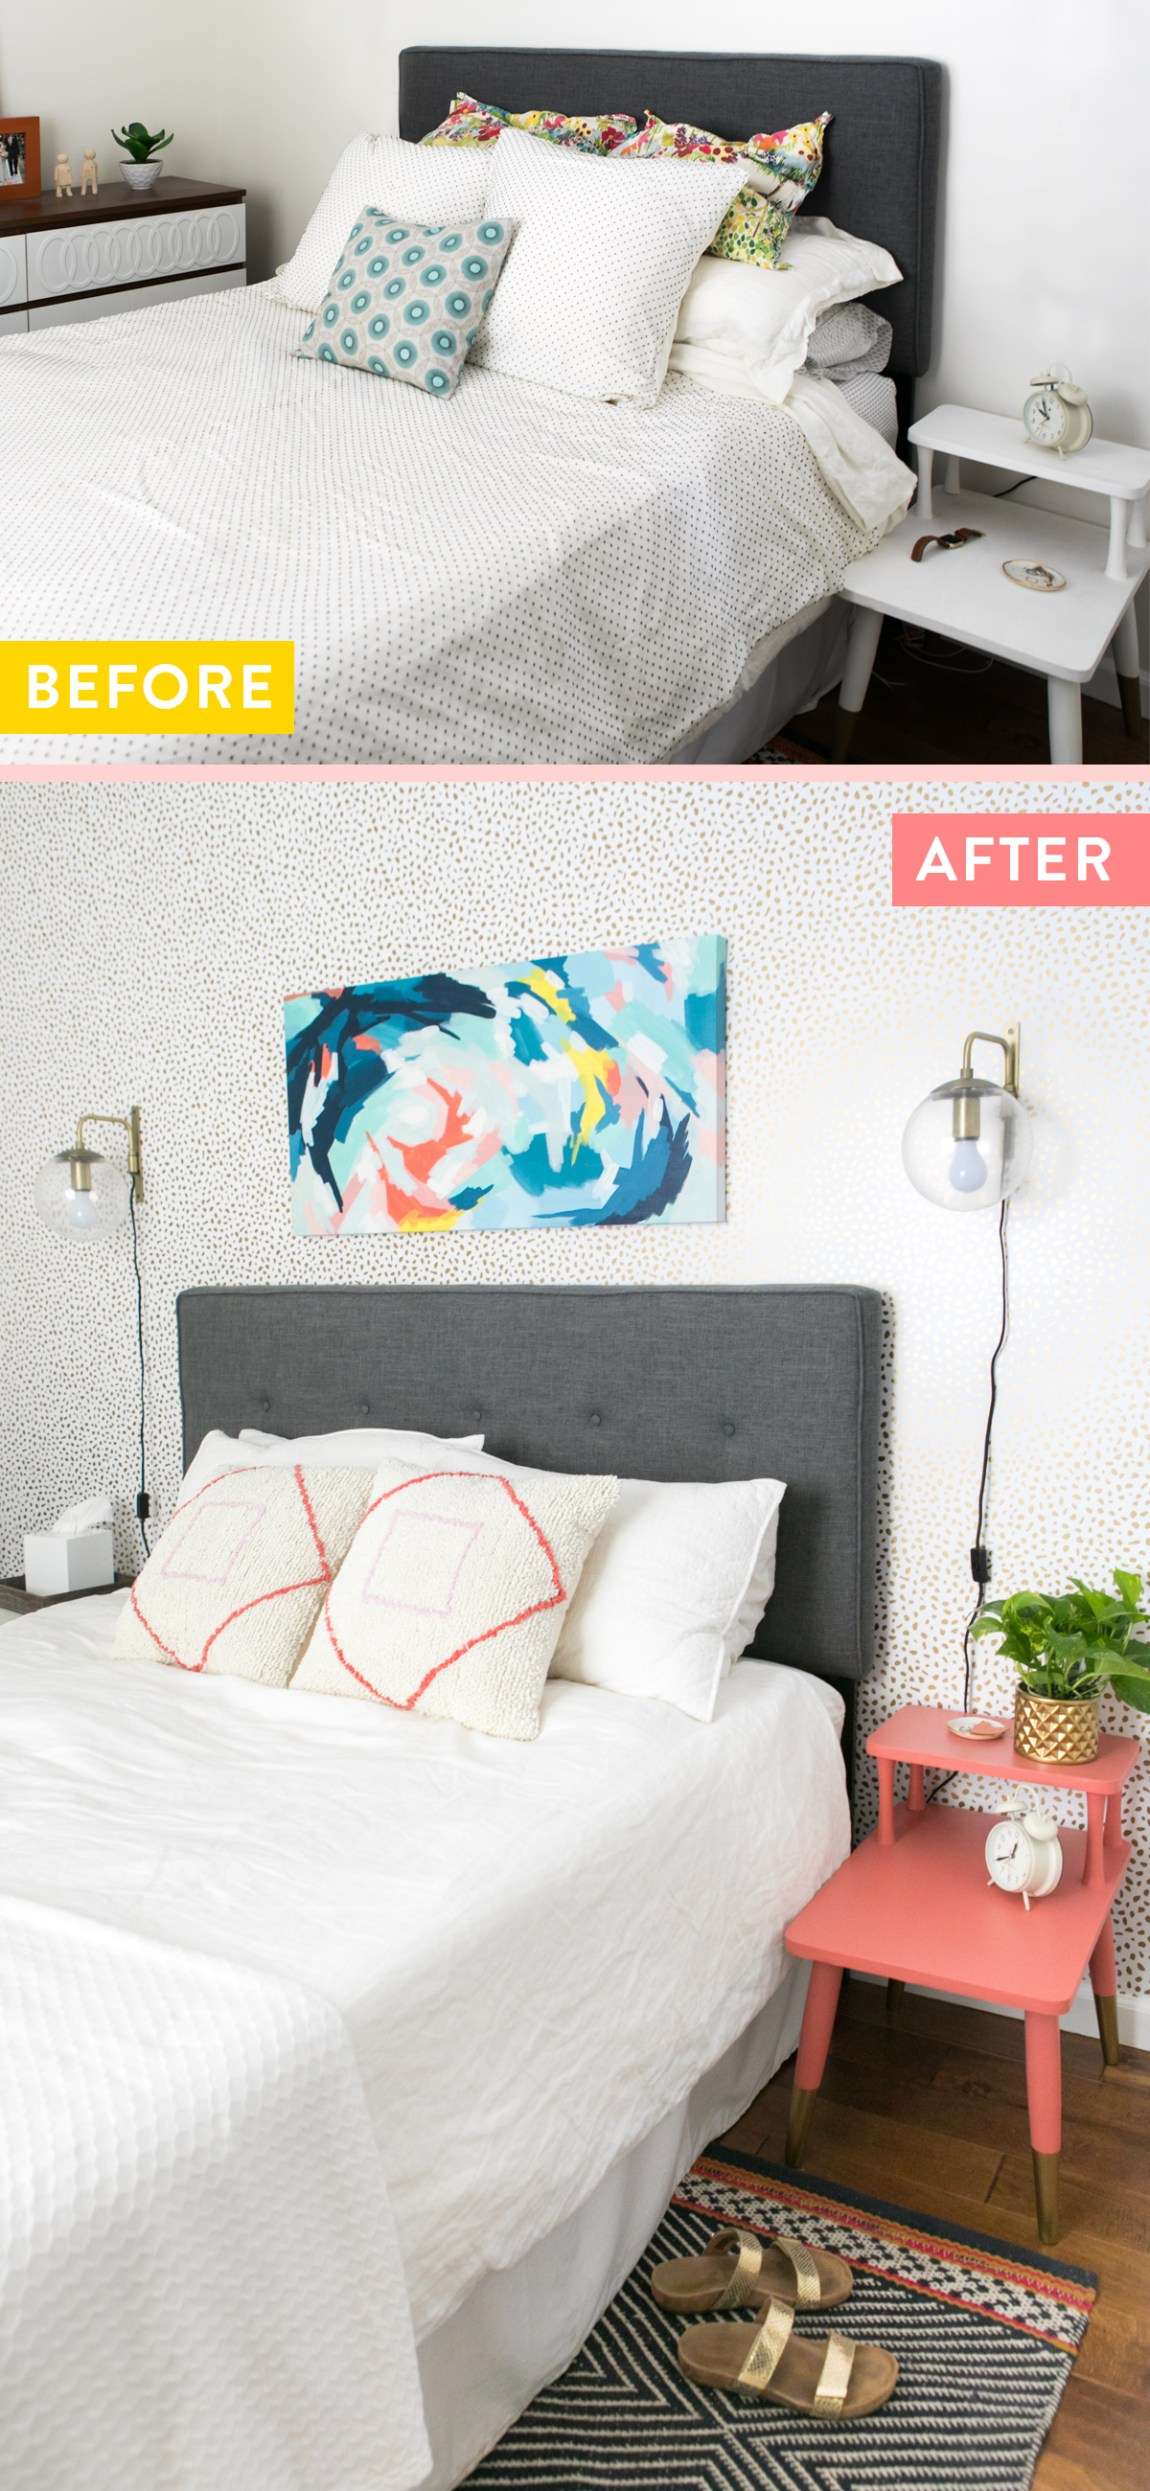 Loving this master bedroom refresh with @devinecolor items from @target